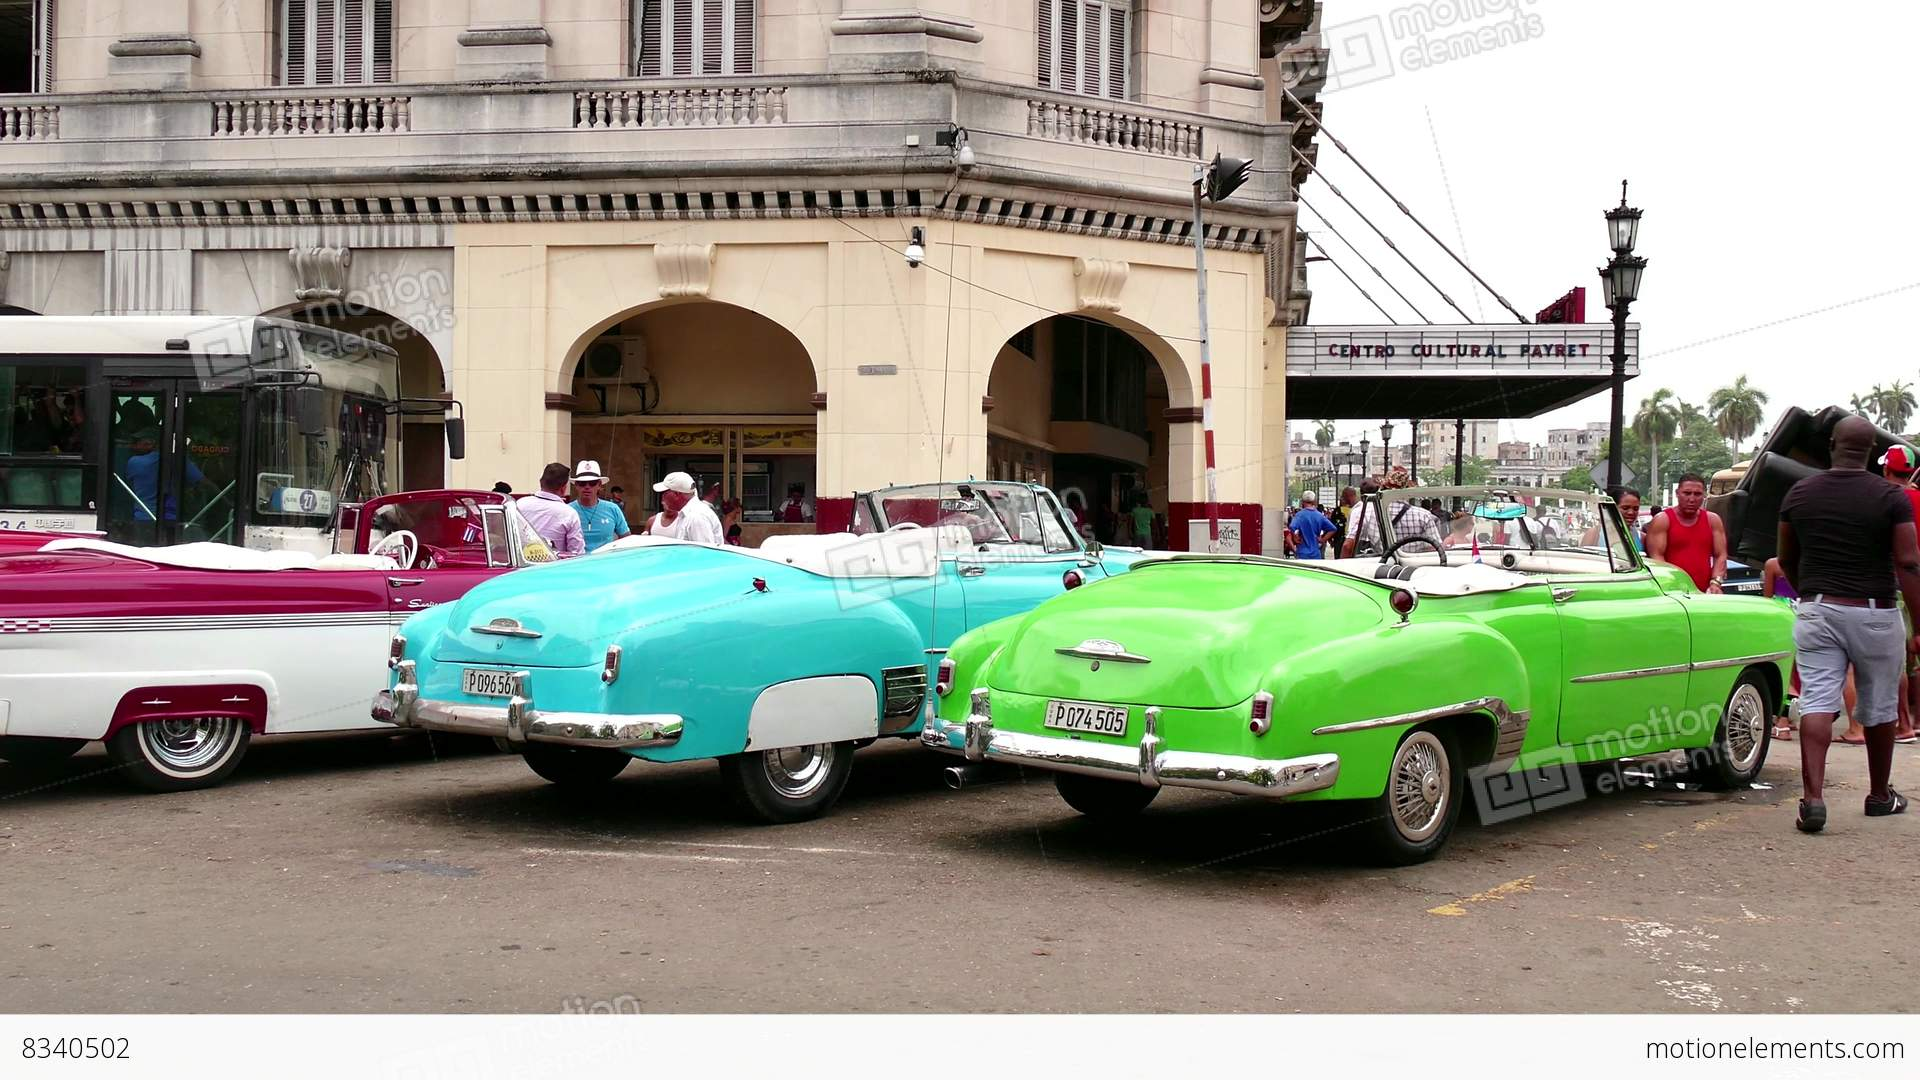 Old Taxis Cabs 1950s Cars For Tourists In Havana Cuba ...1950s Cars For Rent